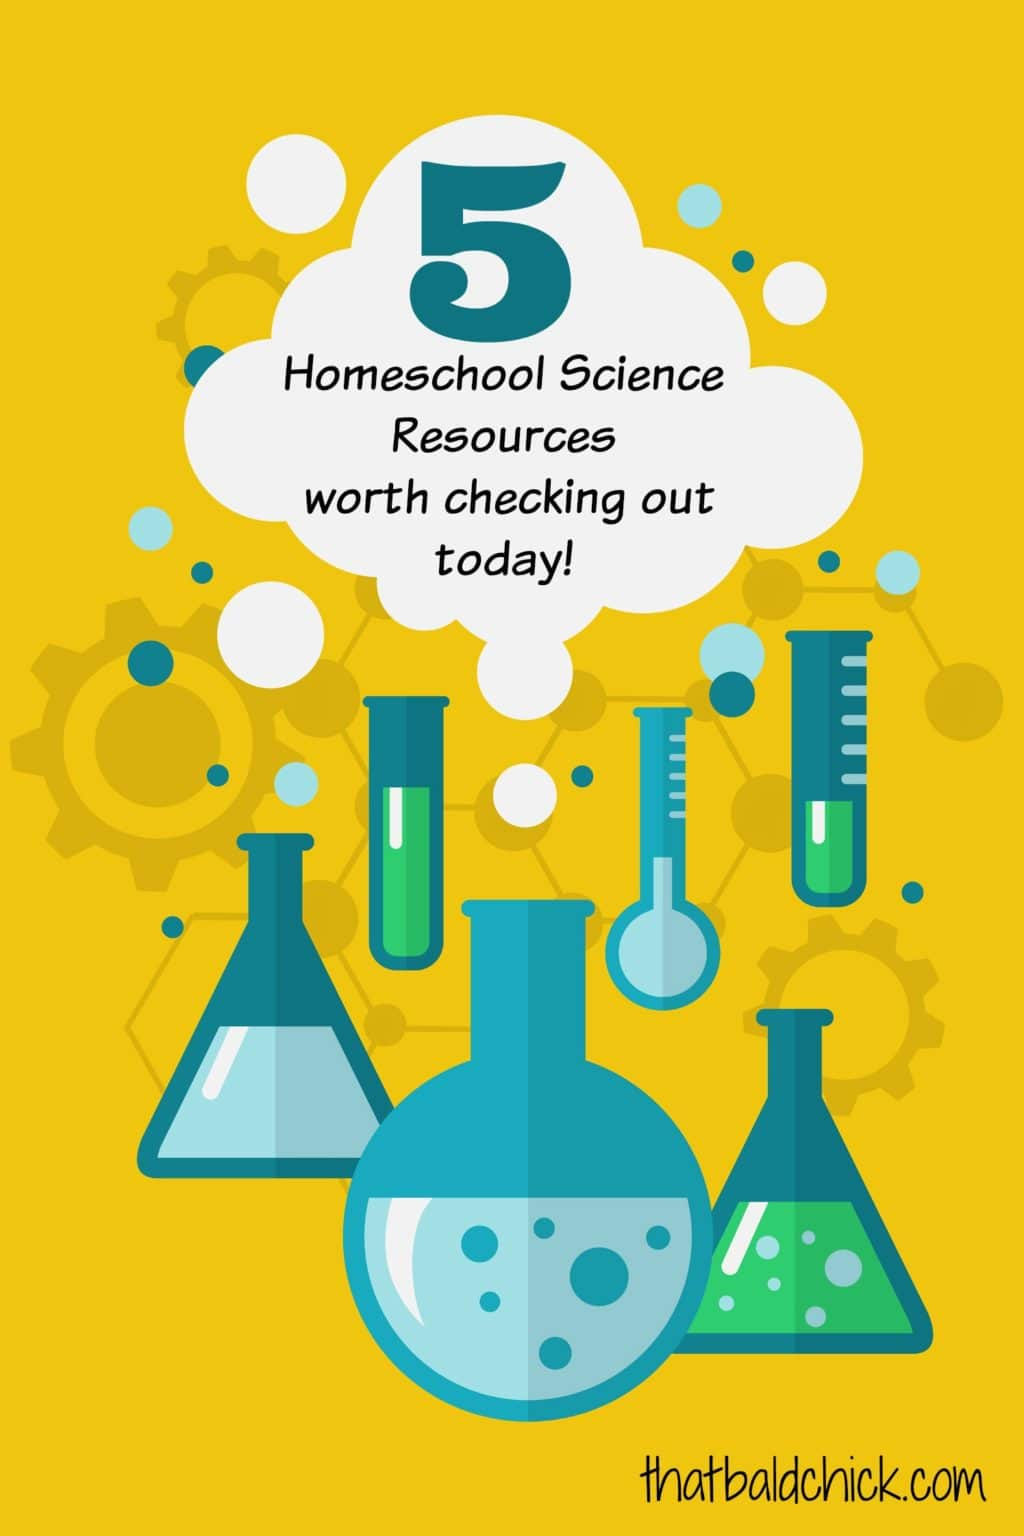 5 homeschool science resources worth checking out today @thatbaldchick